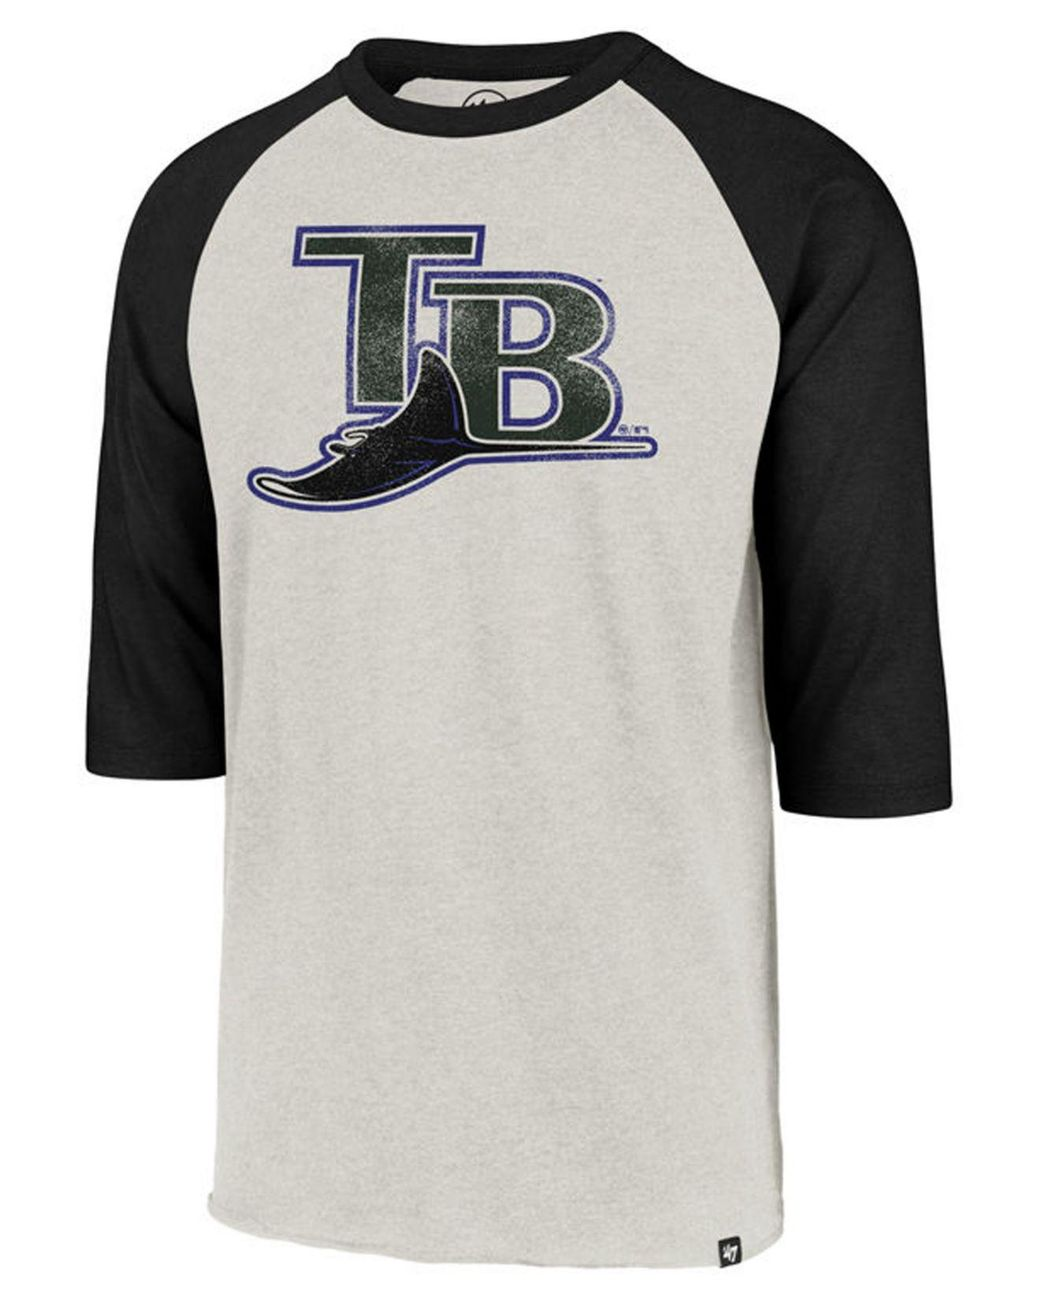 a8cd96e8 Men's Black Tampa Bay Rays Coop Throwback Club Raglan T-shirt